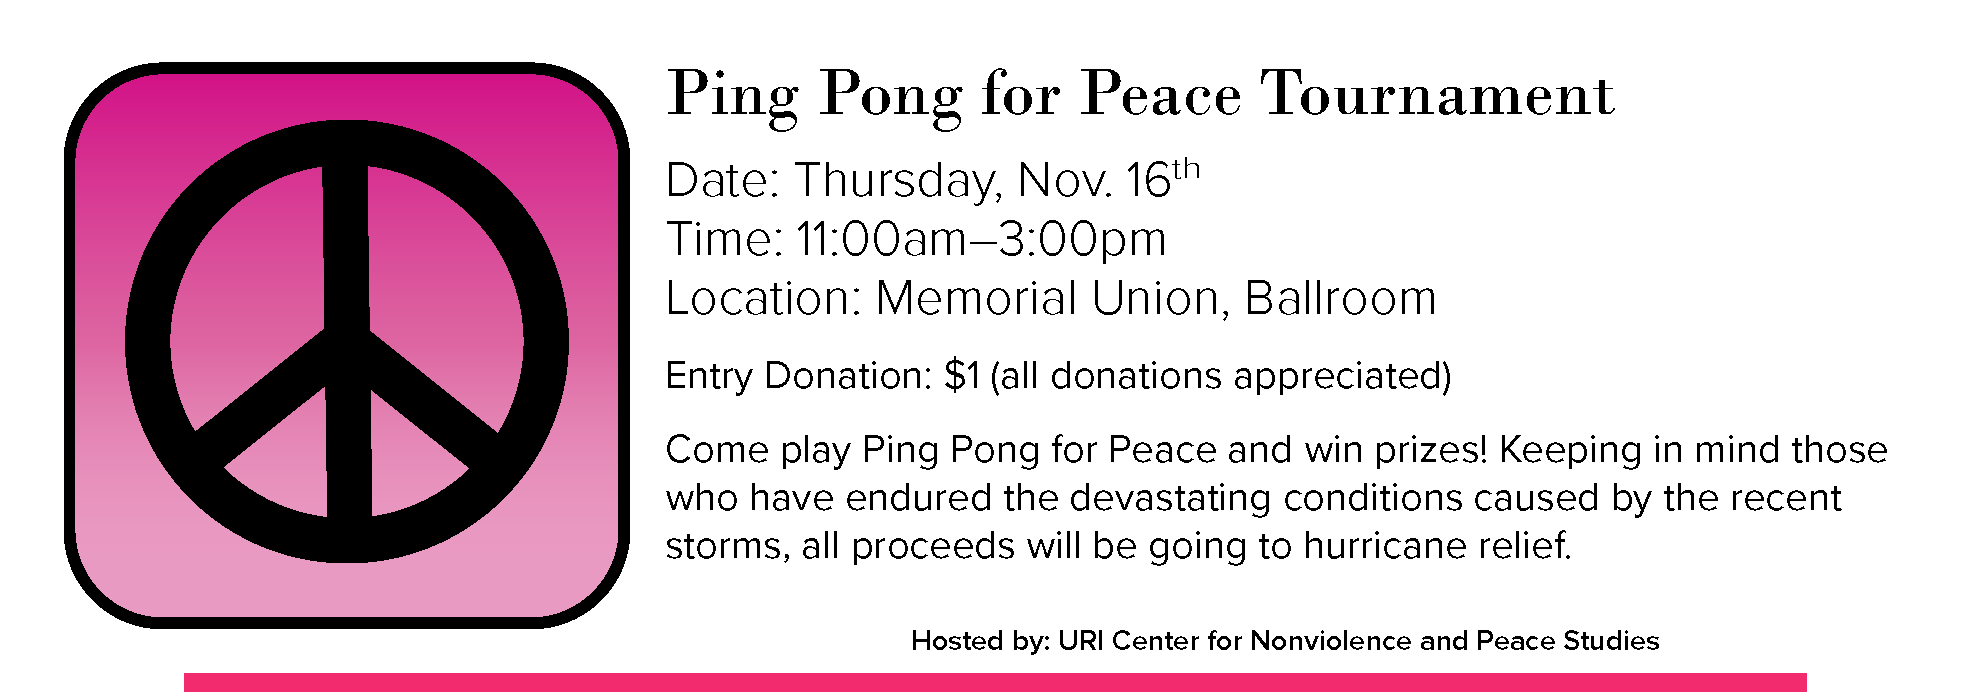 Ping Pong for Peace Tournament Event